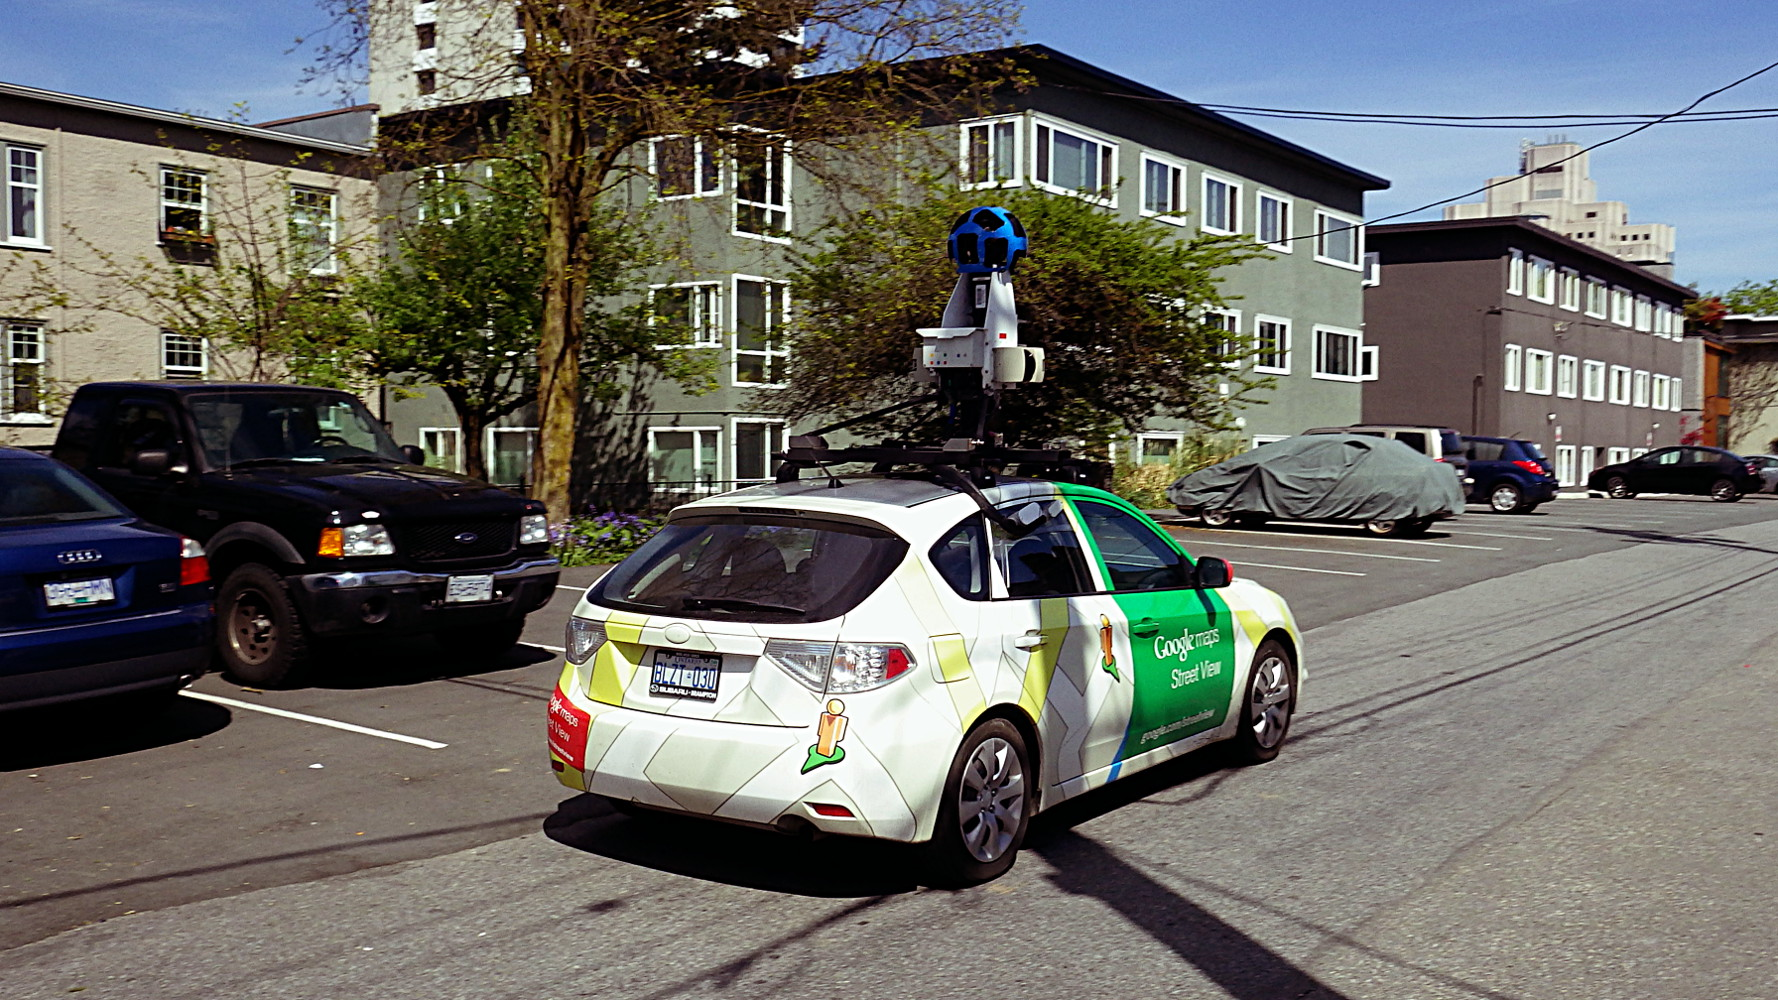 google maps street view car in fairview sqwabb. Black Bedroom Furniture Sets. Home Design Ideas